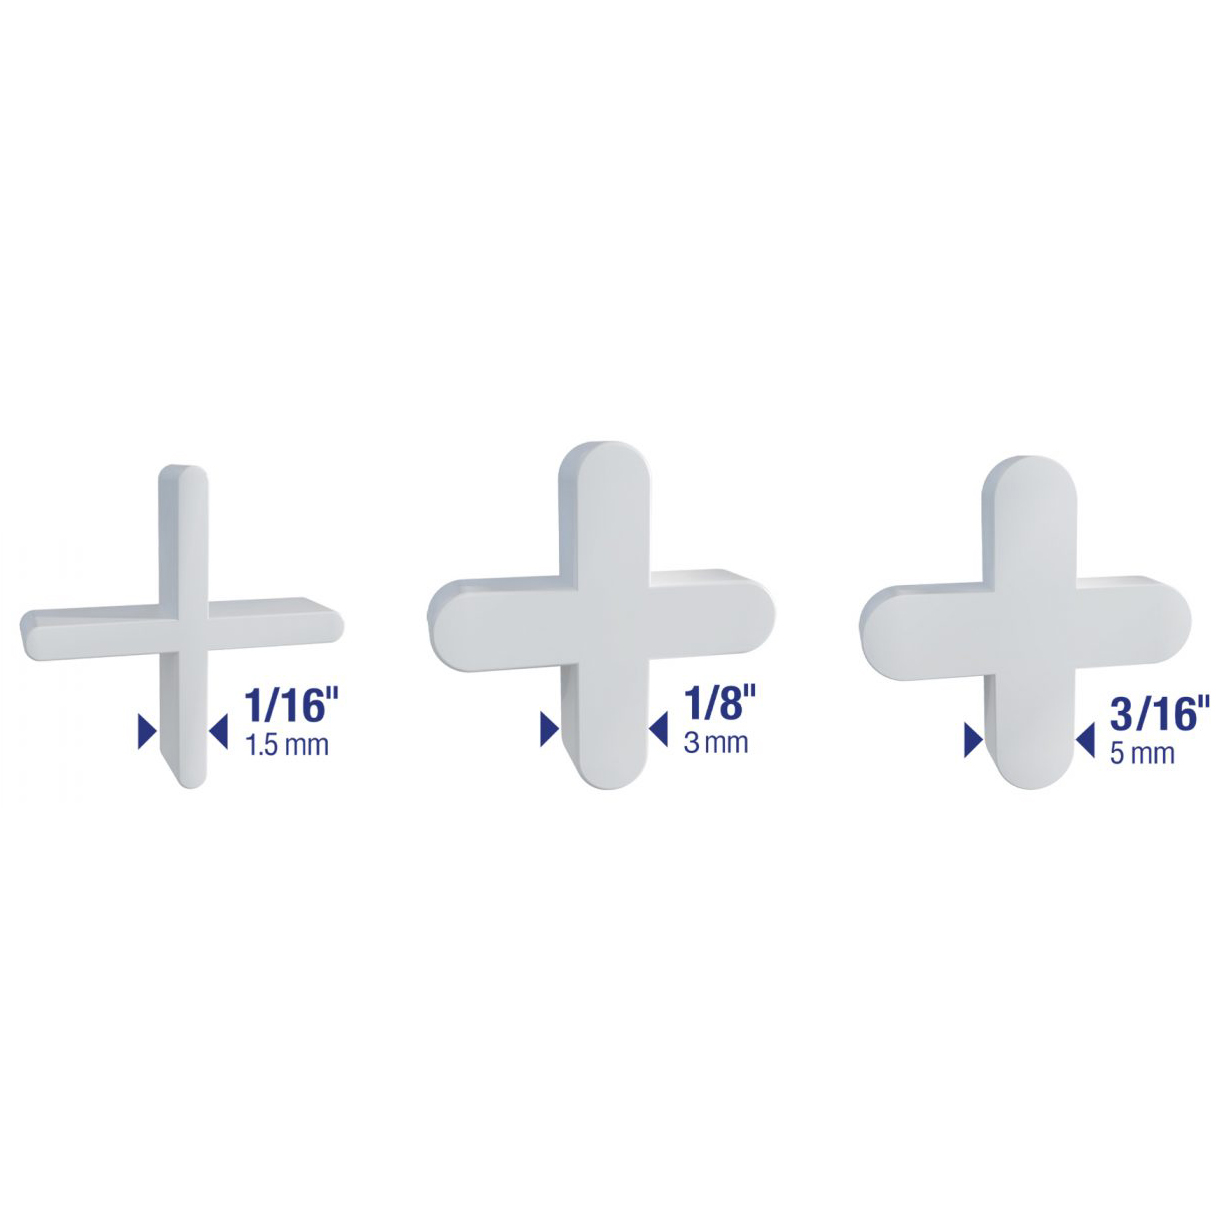 Traditional Flexible Tile Spacers